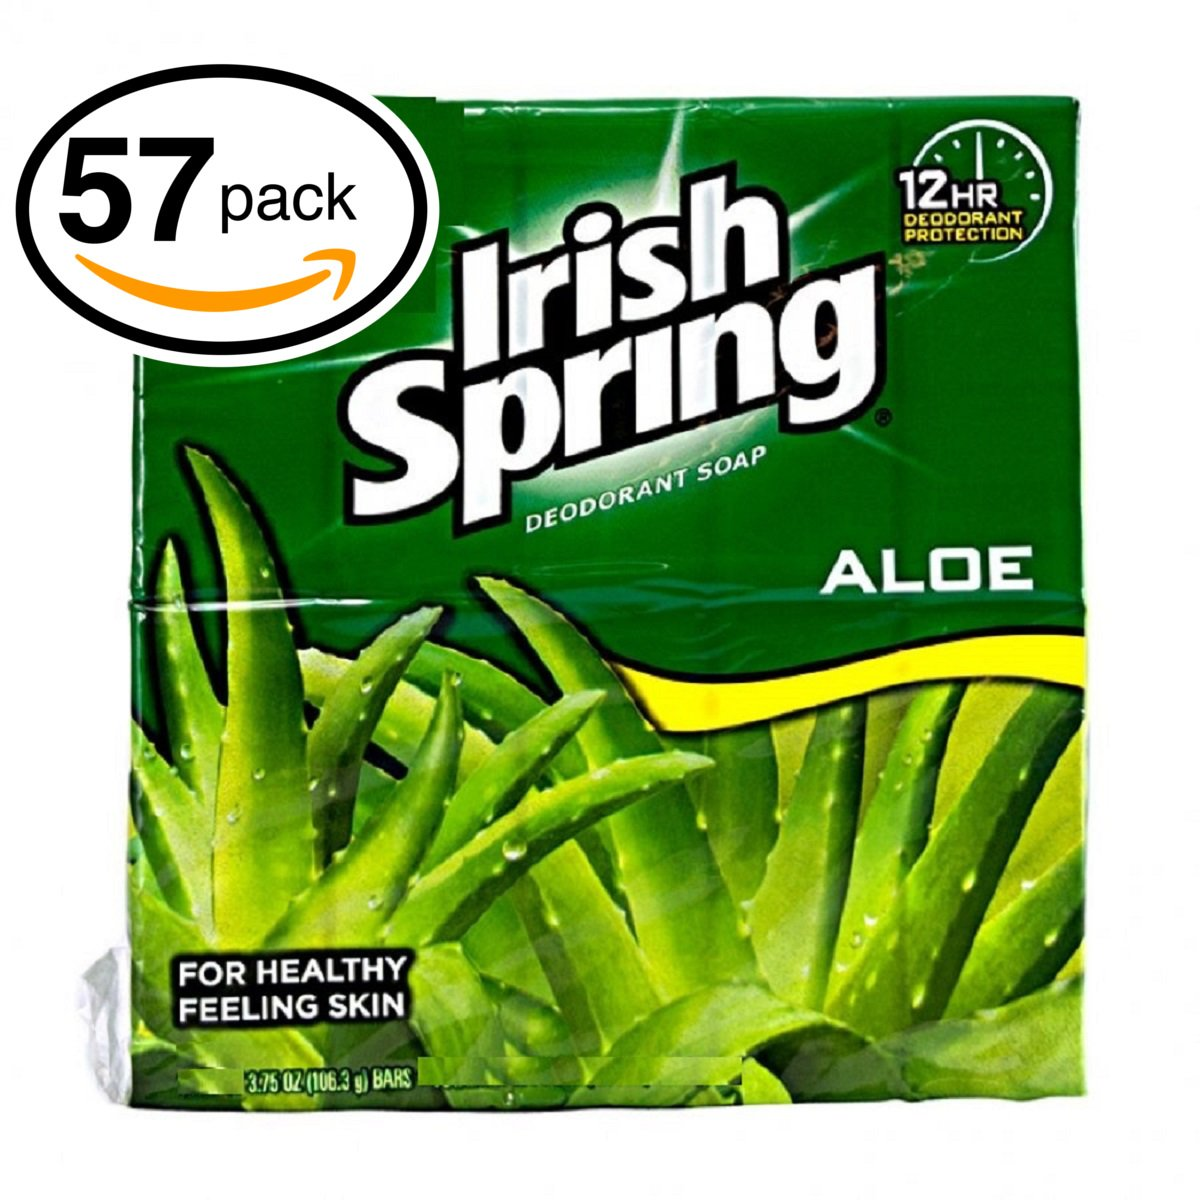 Irish Spring Deodorant Soap (57 Bars, 3.75oz Each Bar, Aloe)